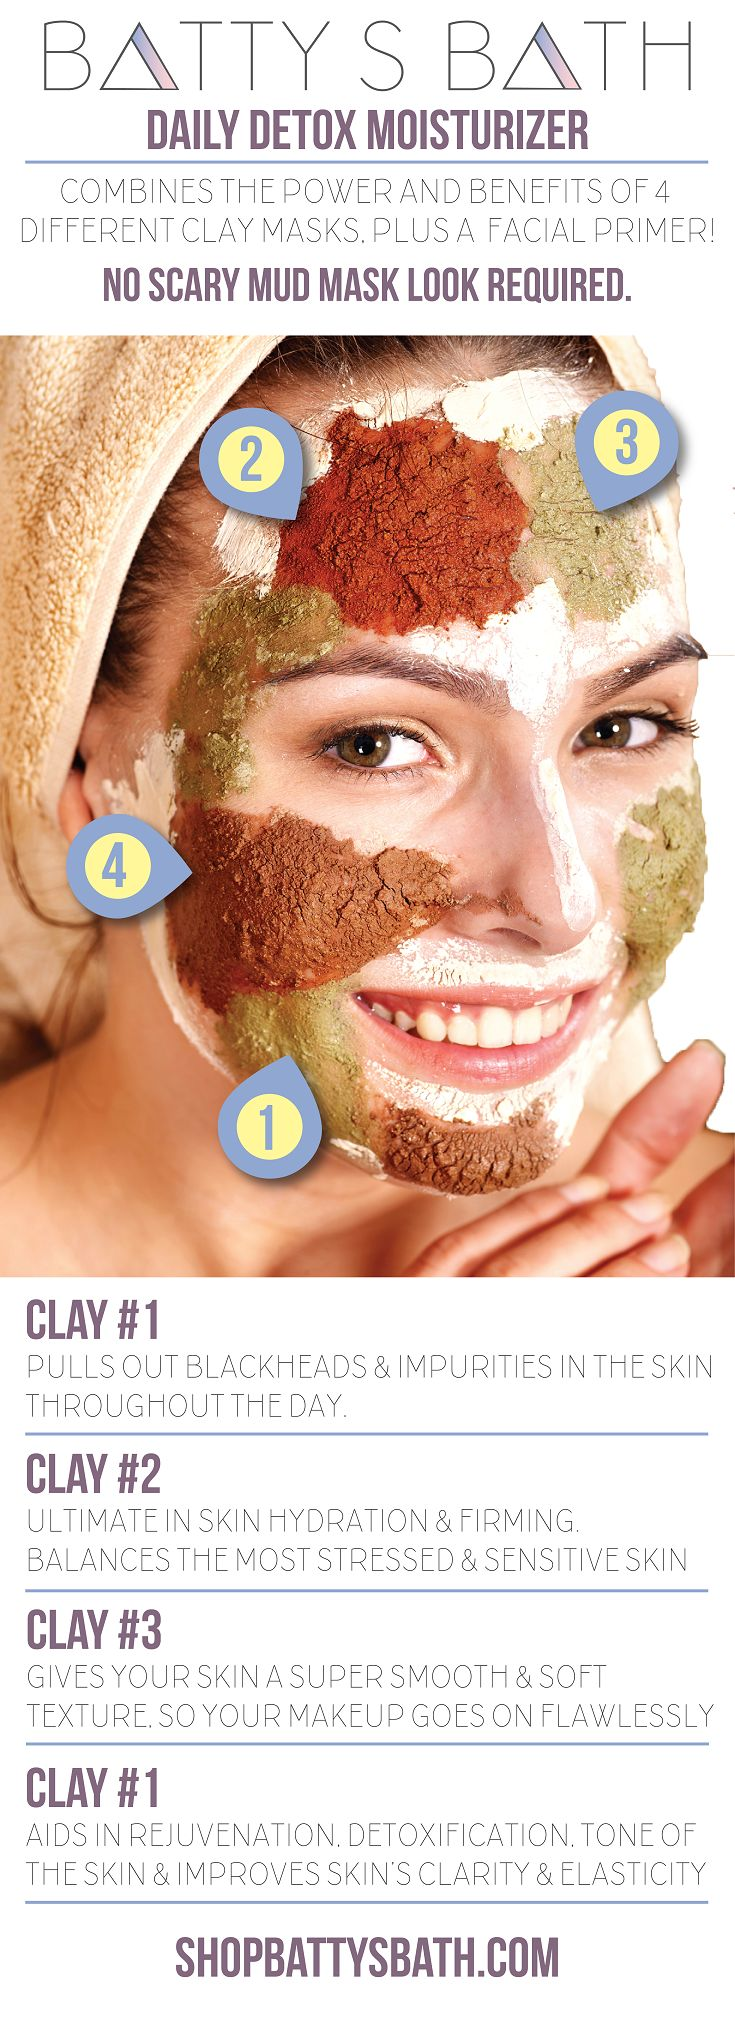 4 Mud Masks rolled in 1 facial moisturizer - Daily Detox Moisturizer -   100% natural and pure by Batty's Bath cruelty free skin care and cosmetics